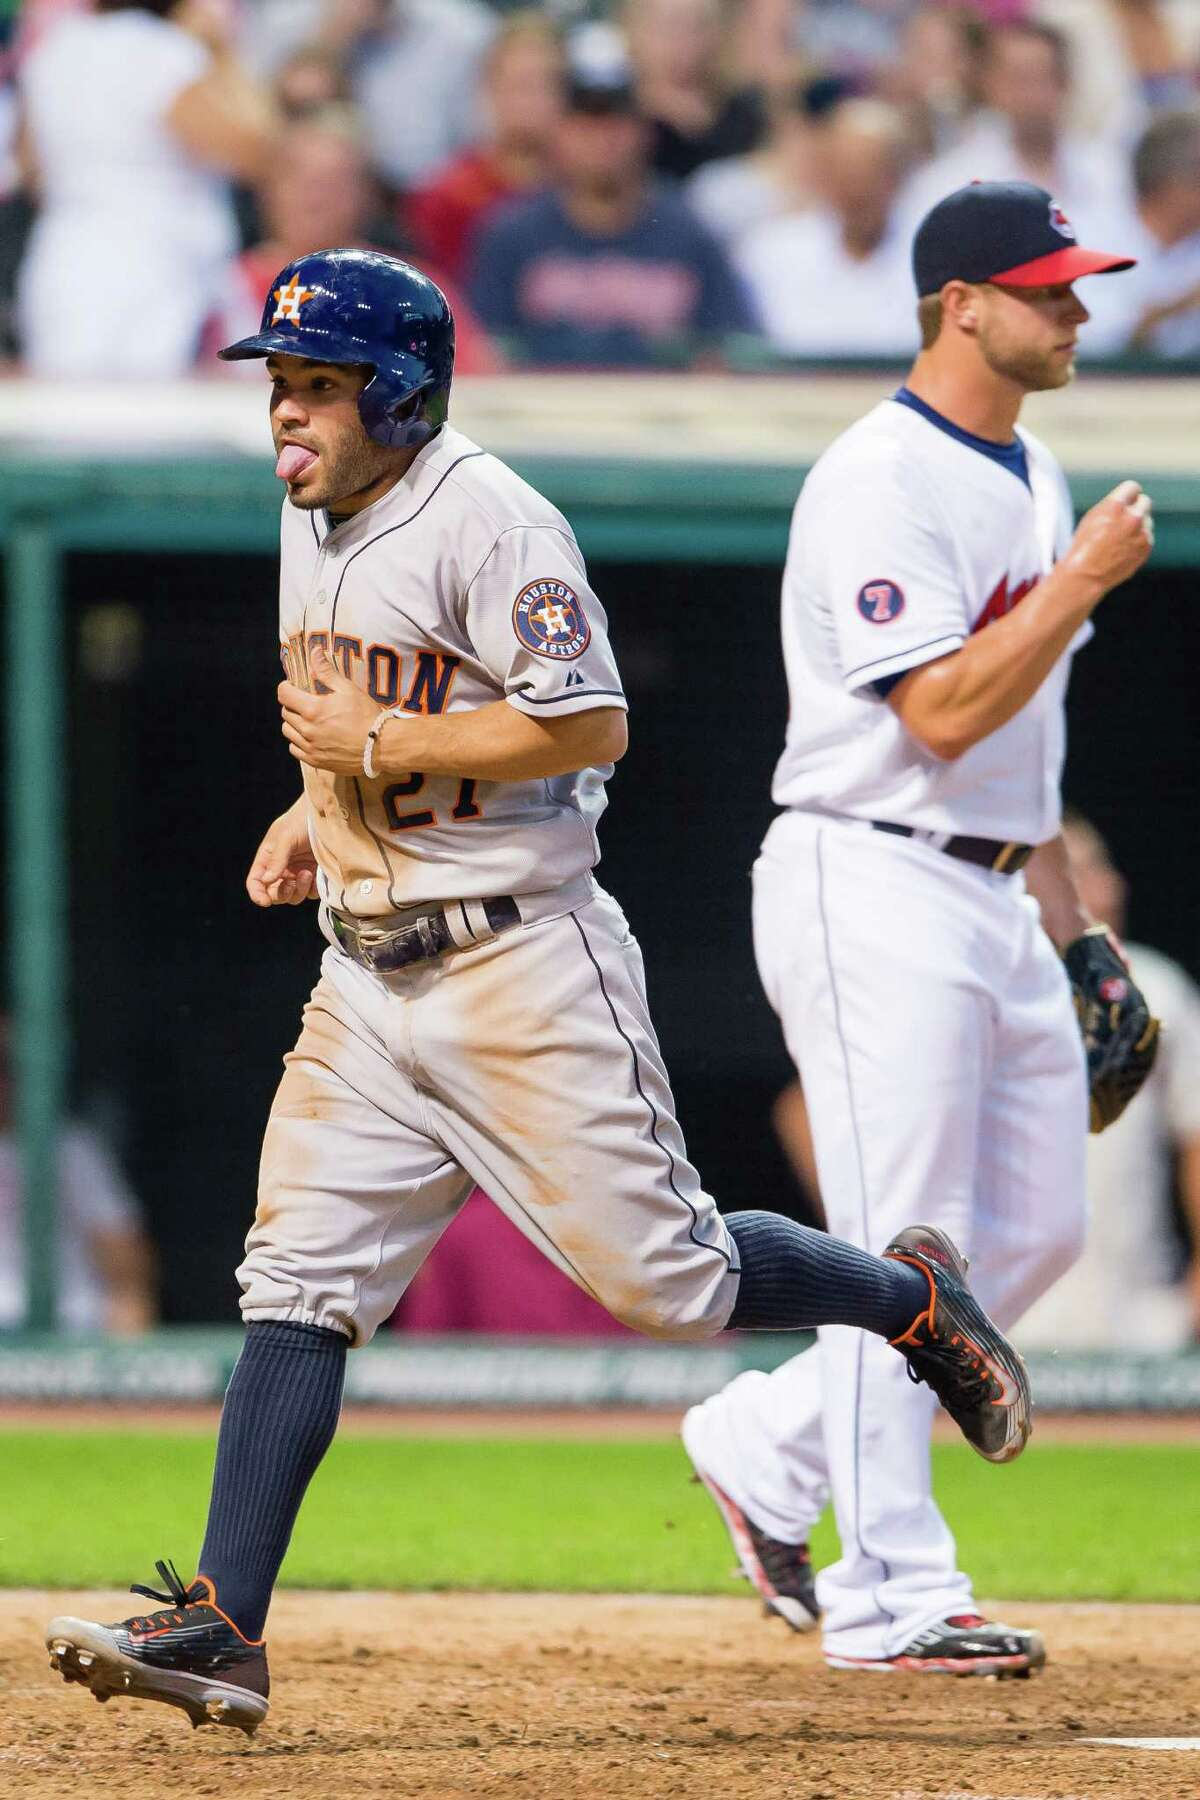 Astros second baseman Jose Altuve feels the effects of chugging around the bases to score on a single by Preston Tucker in the sixth inning.